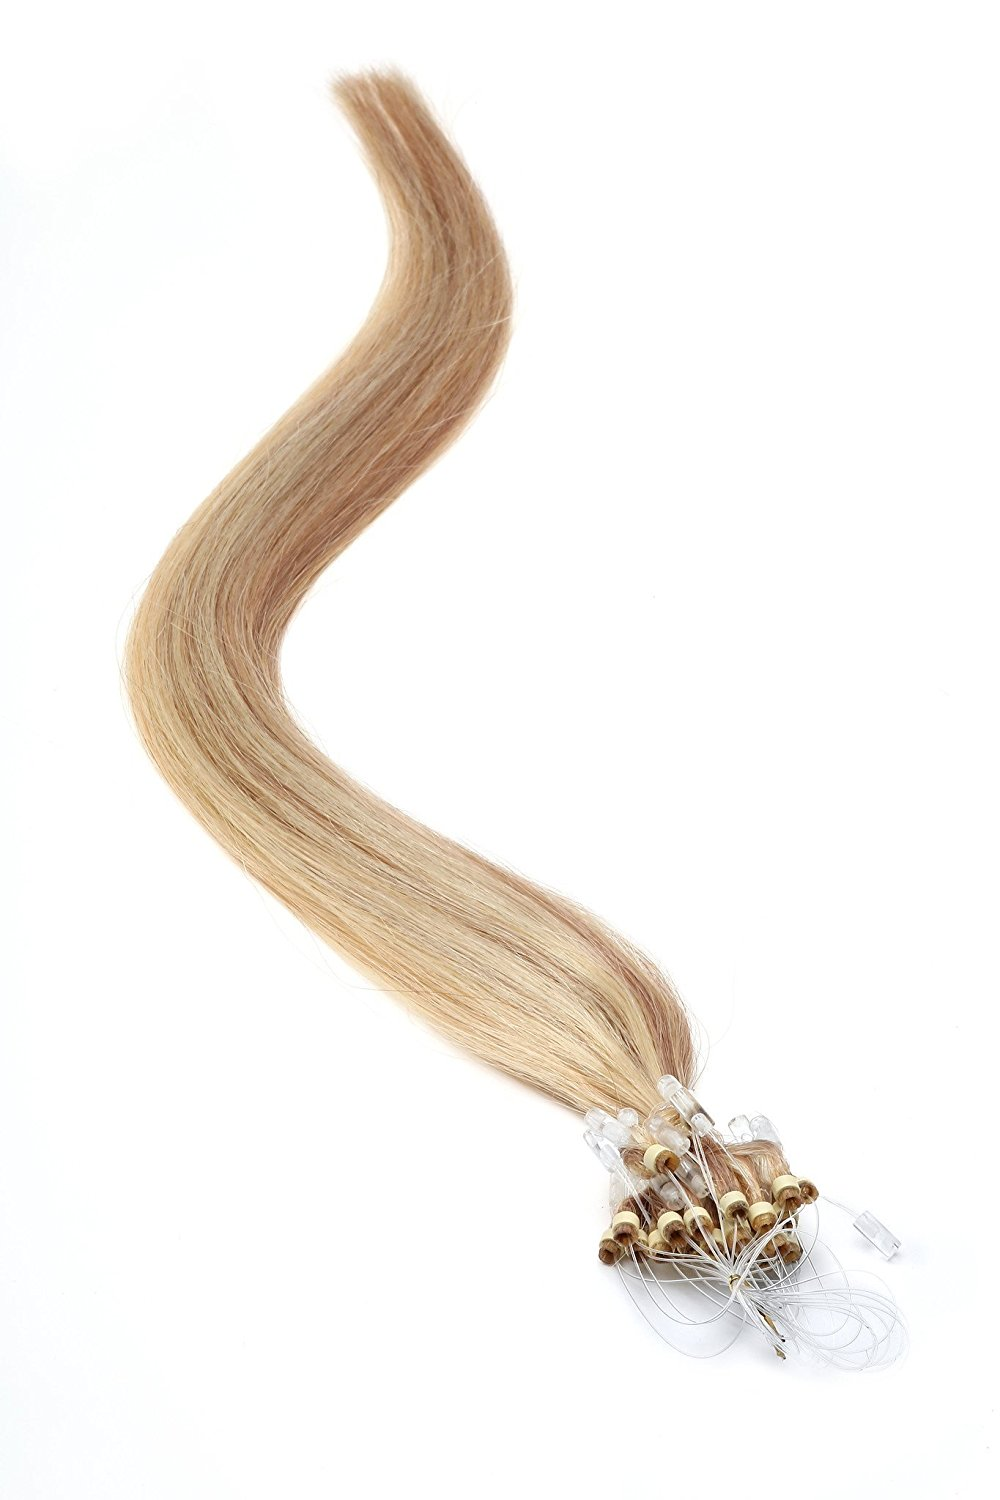 Cheap Blonde Micro Loop Hair Extensions Find Blonde Micro Loop Hair